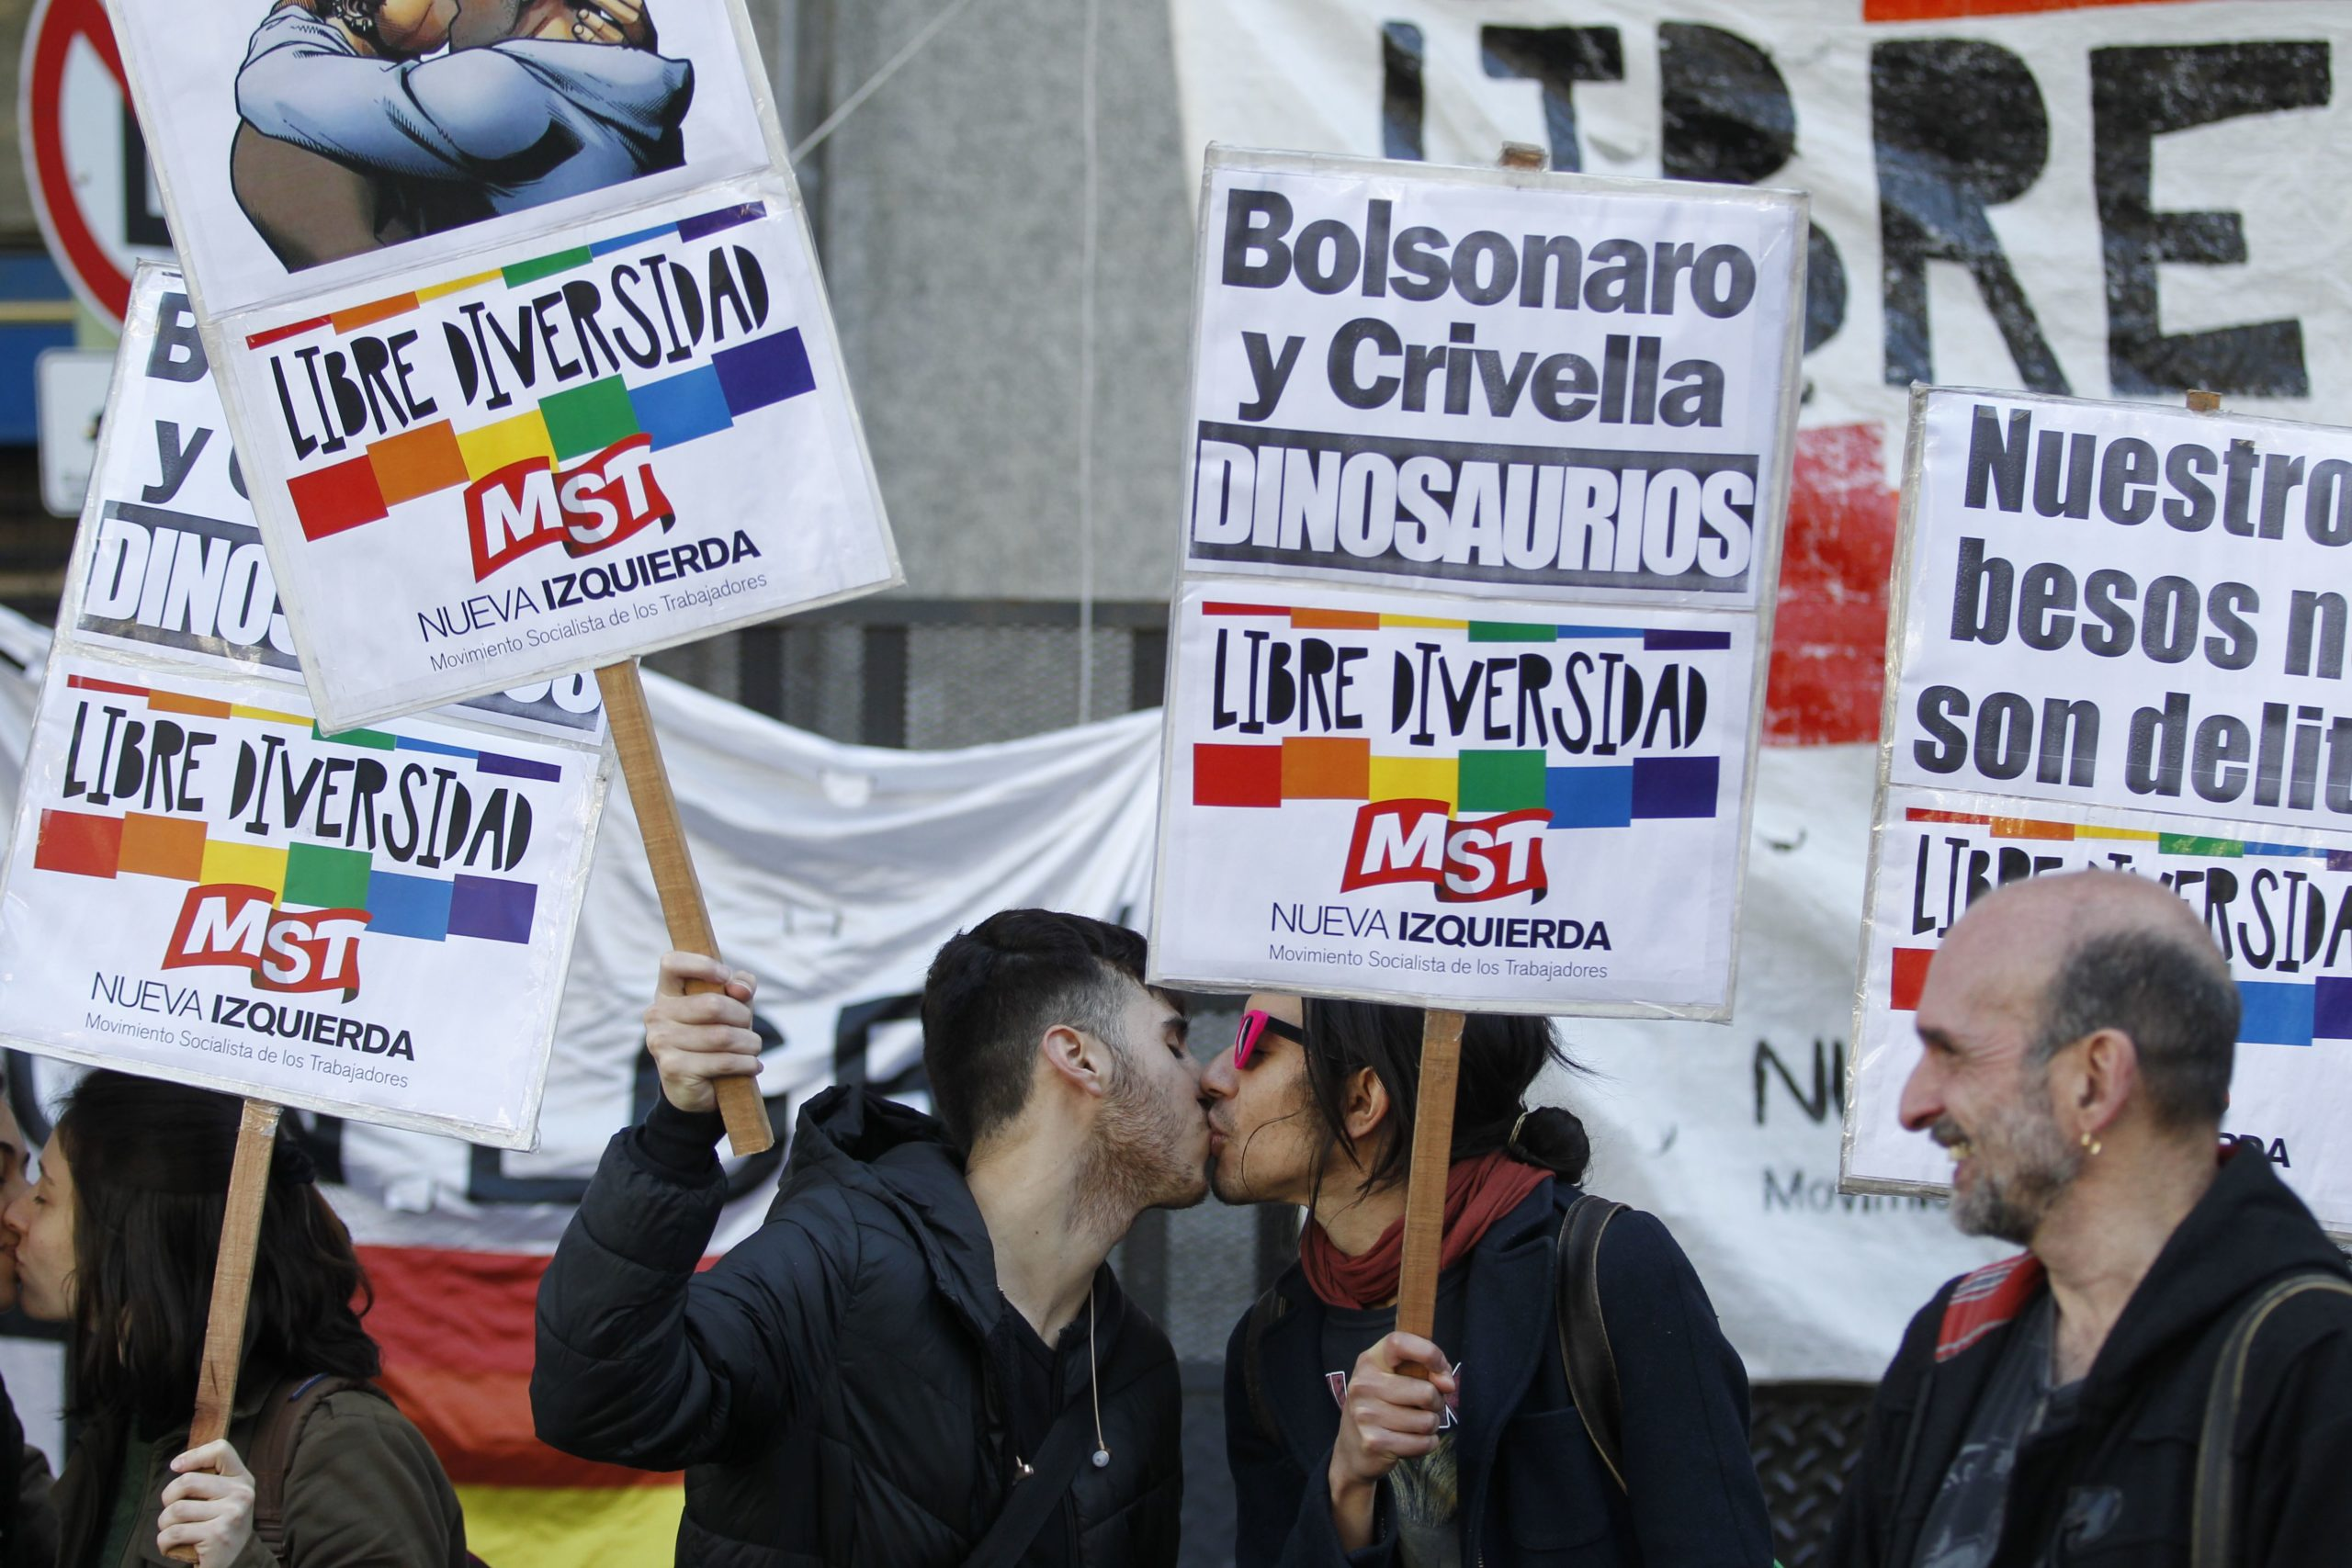 """Protestors kiss each other during a demonstration outside the Brazilian embassy in Buenos Aires on September 12, 2019, against Rio de Janeiro's mayor Marcelo Crivella, an Evangelical Protestant, after he ordered to remove a comic book from sale because of its """"sexual content for minors"""". - The comic that sparked the mayor's ire showed the Marvel superhero characters Wiccan and Hulkling exchanging a kiss, fully dressed. (Photo by Emiliano Lasalvia/AFP via Getty Images)"""